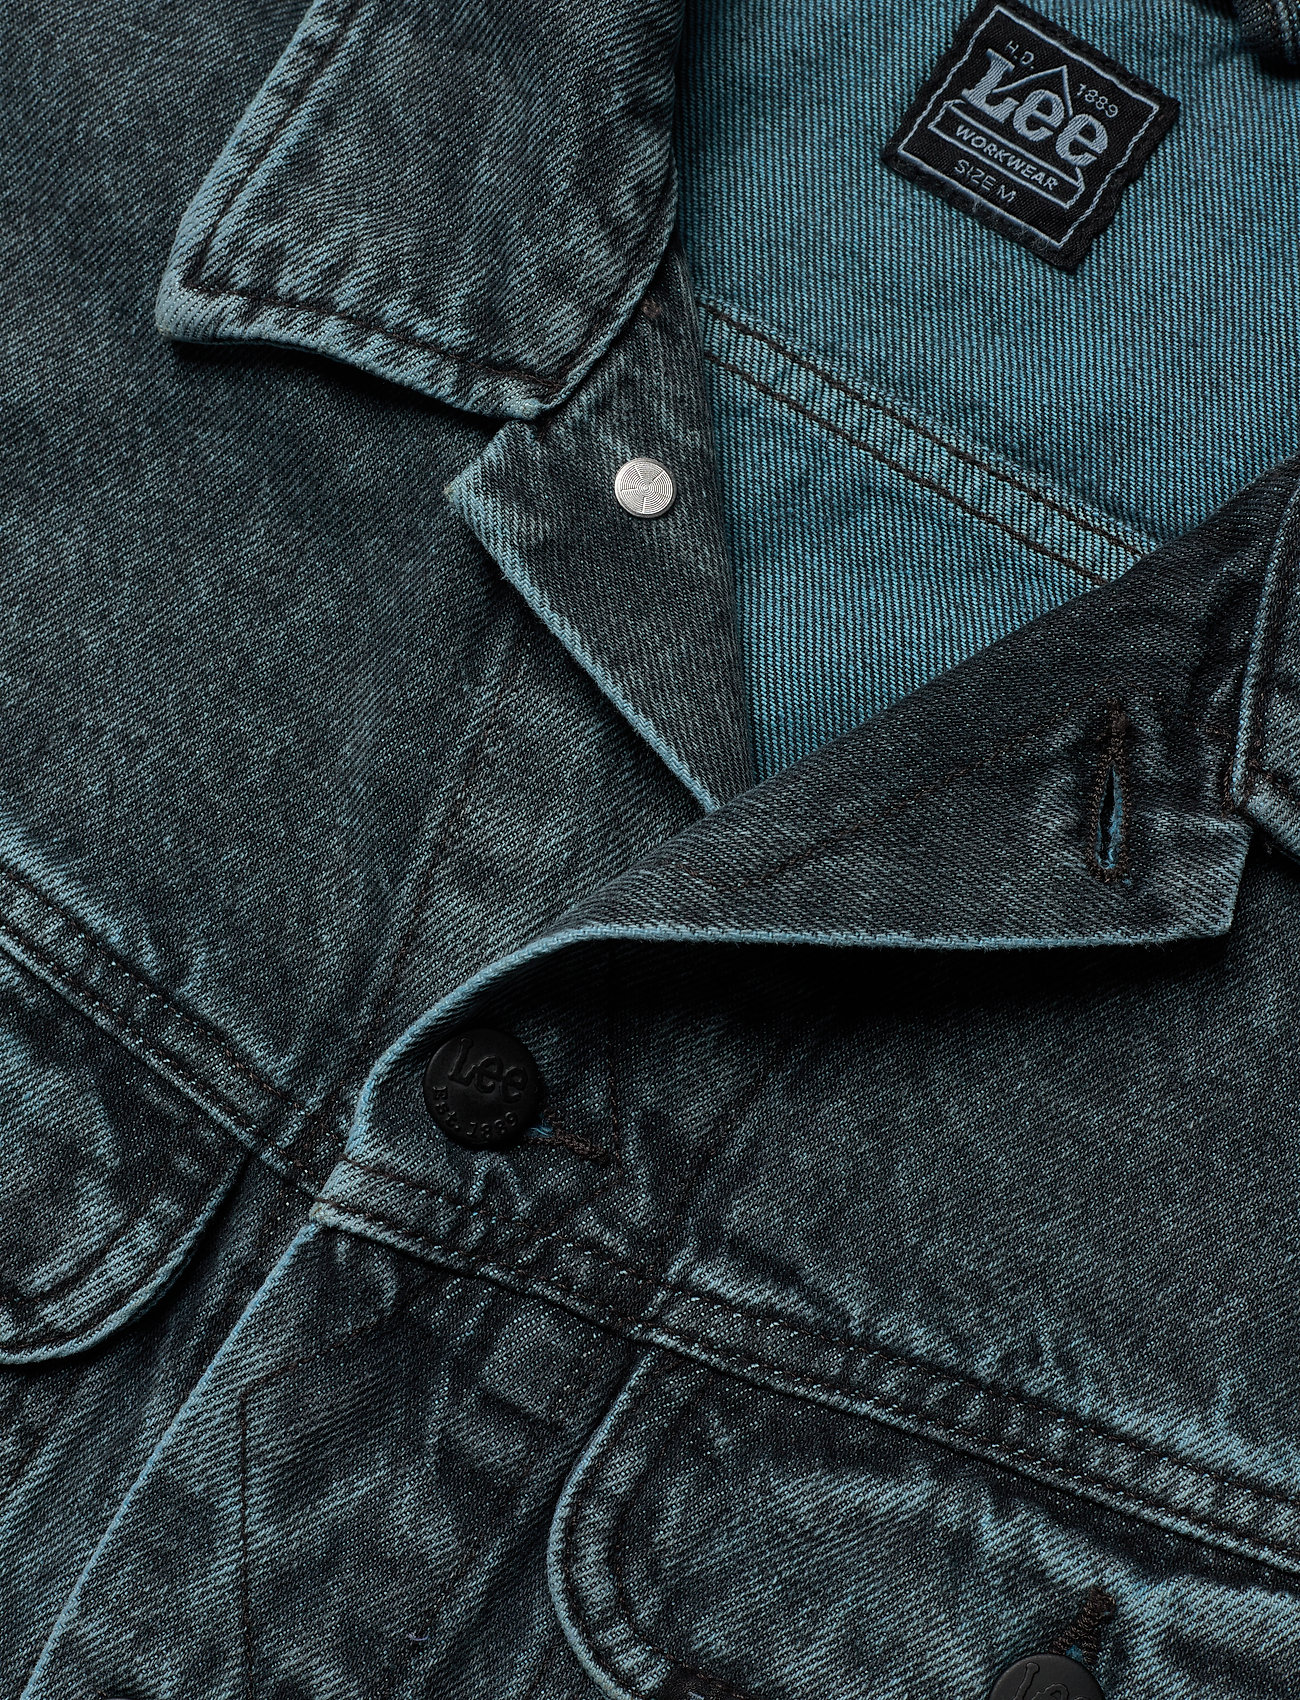 Lee Rider Jacket (Cerulean) (71.47 €) - Lee Jeans VnpcJ